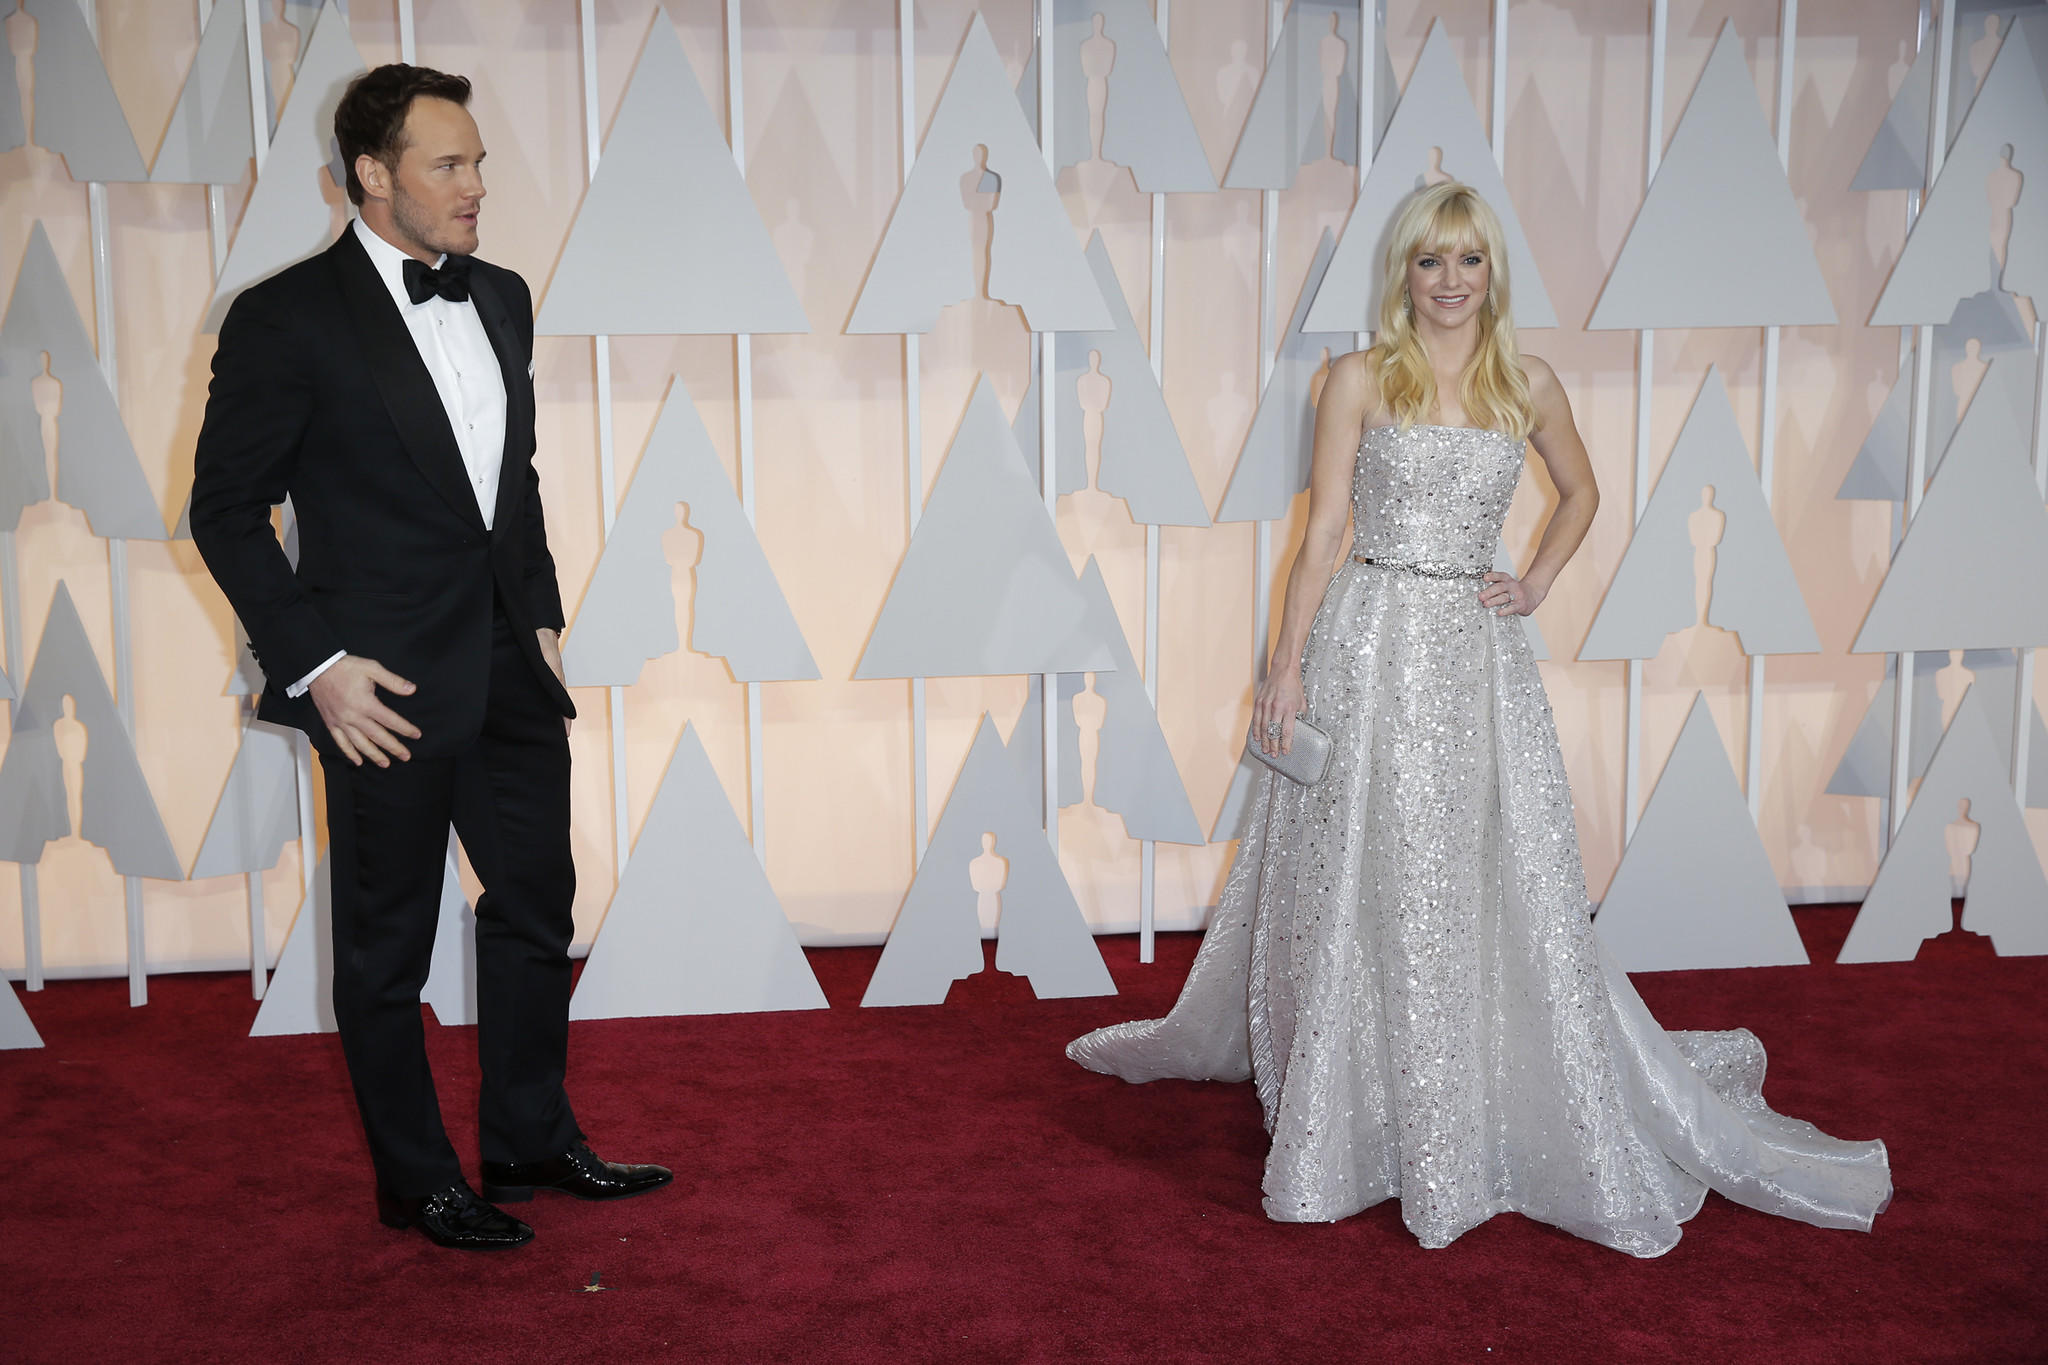 Kristen Bell Drops Some Knowledge About Anna Faris and Chris Pratt's Split